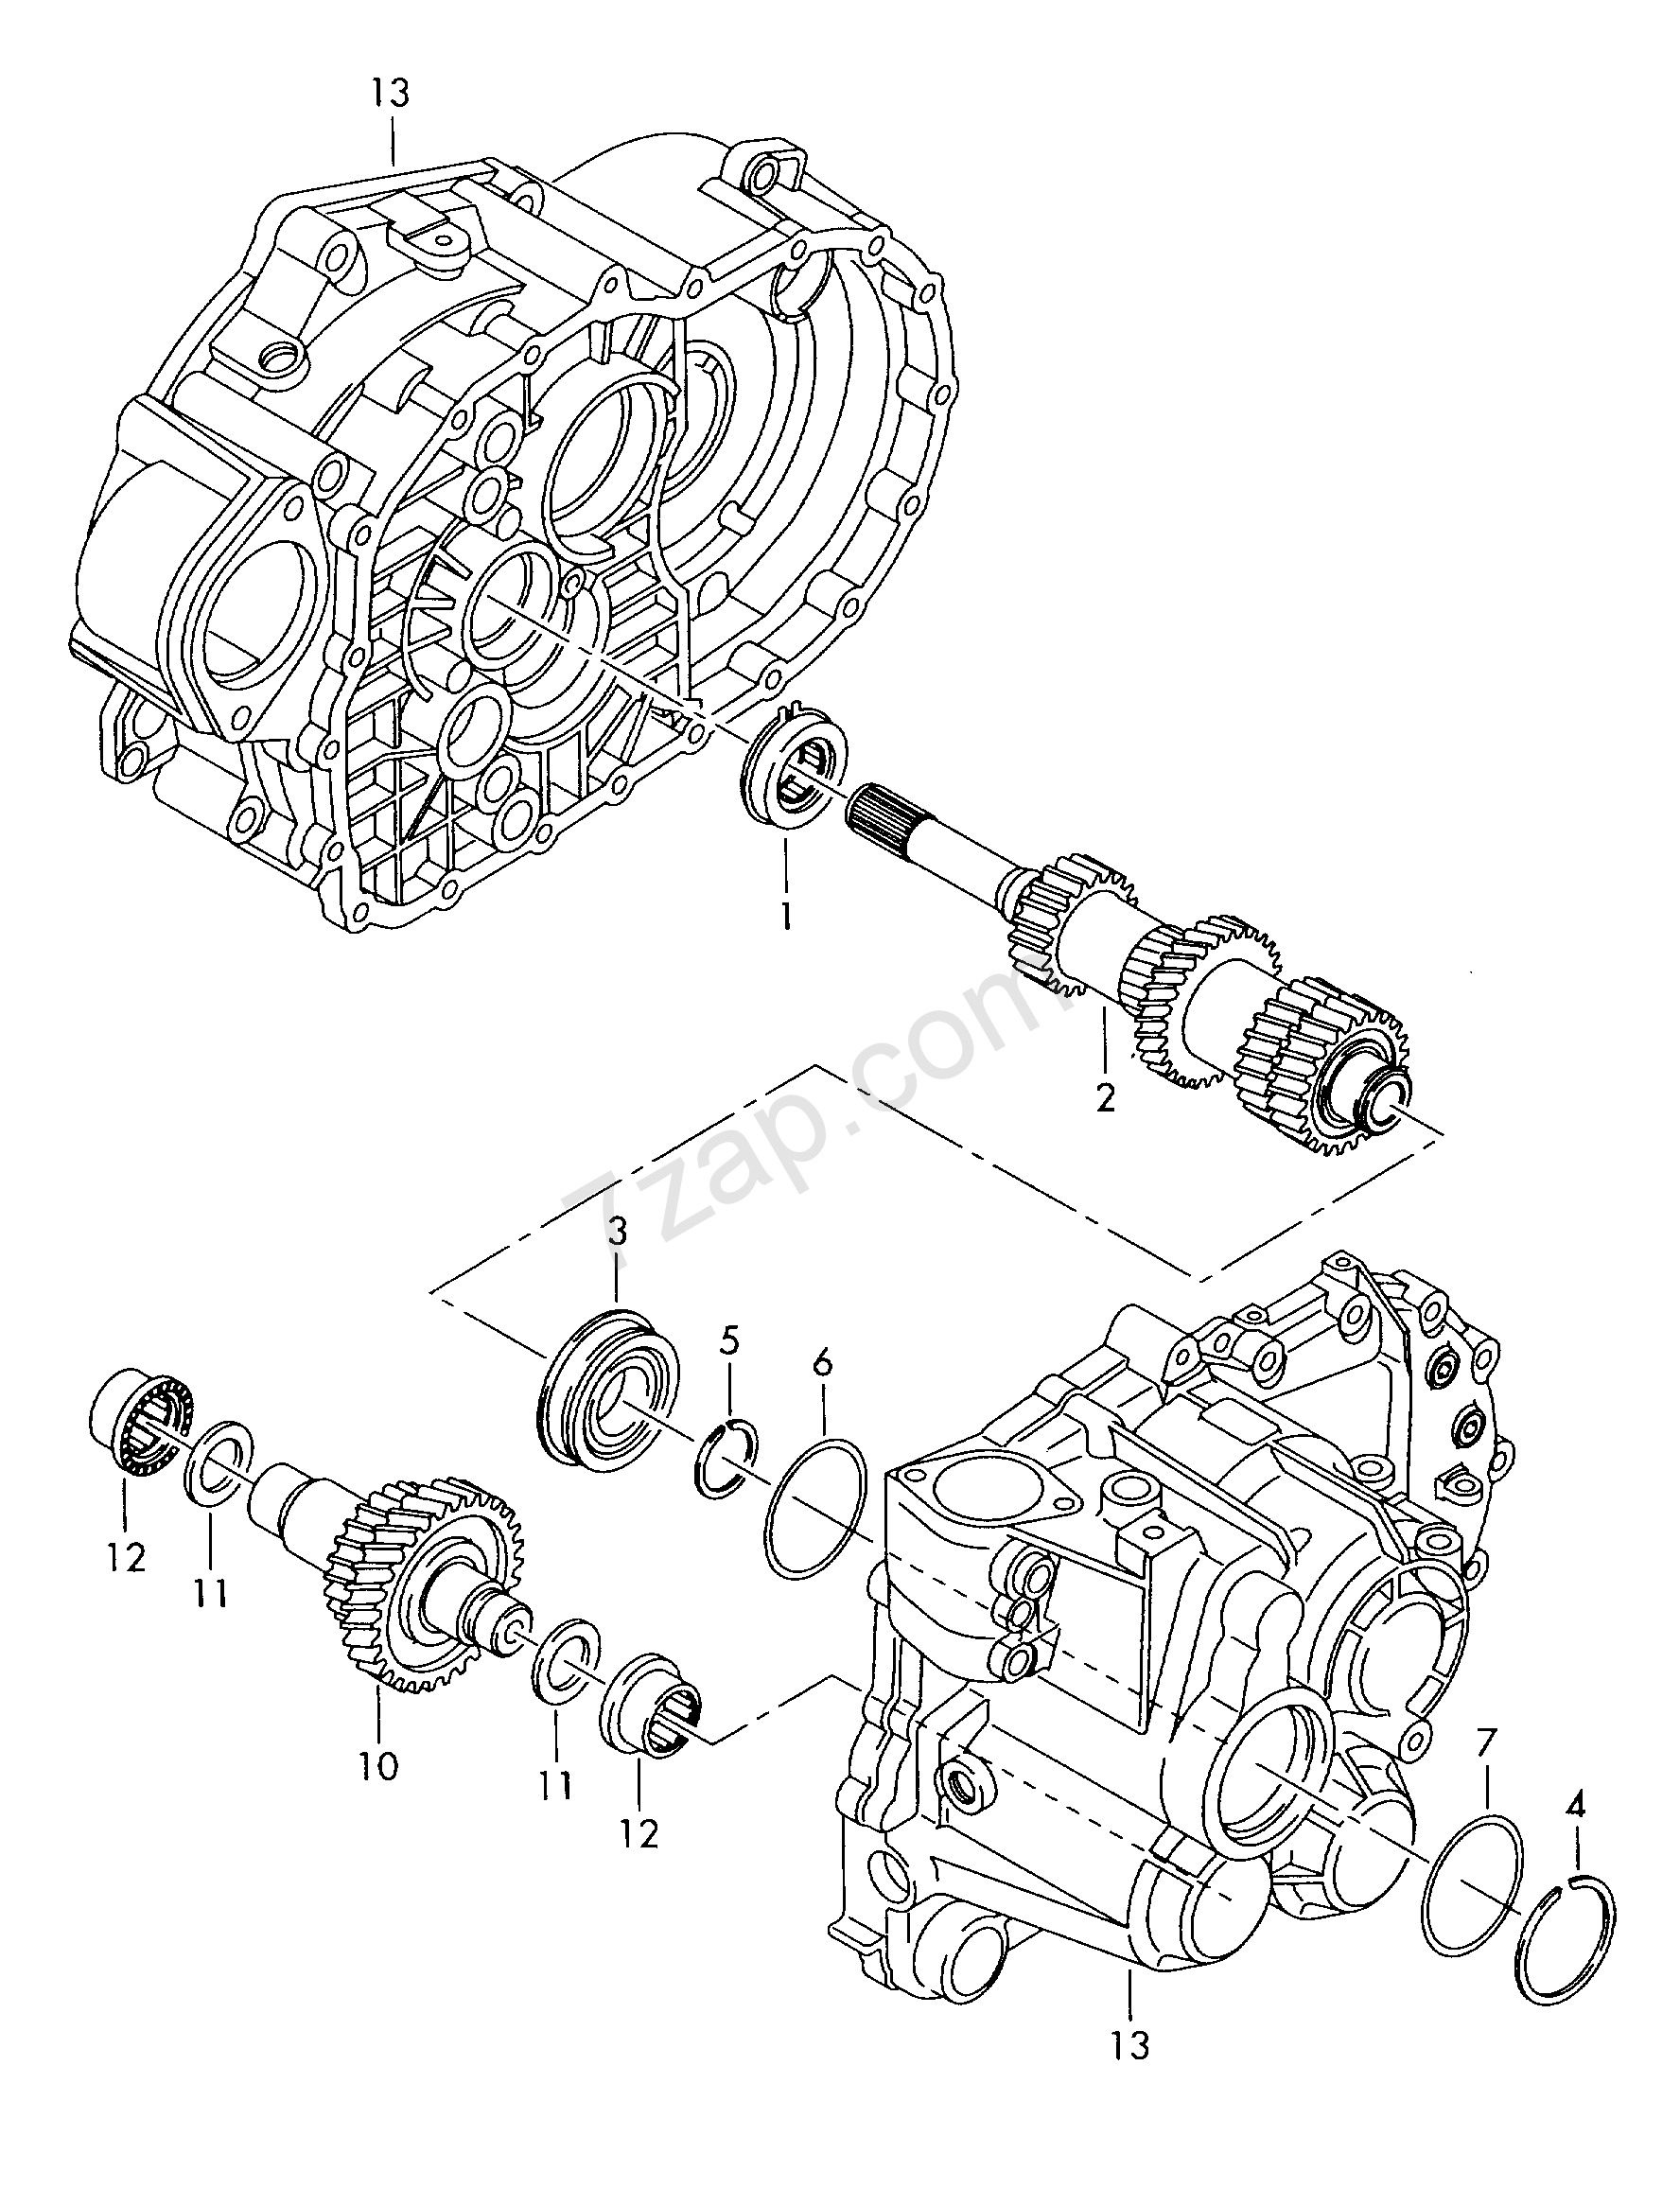 gears and shafts; input shaft; for 6 speed manual